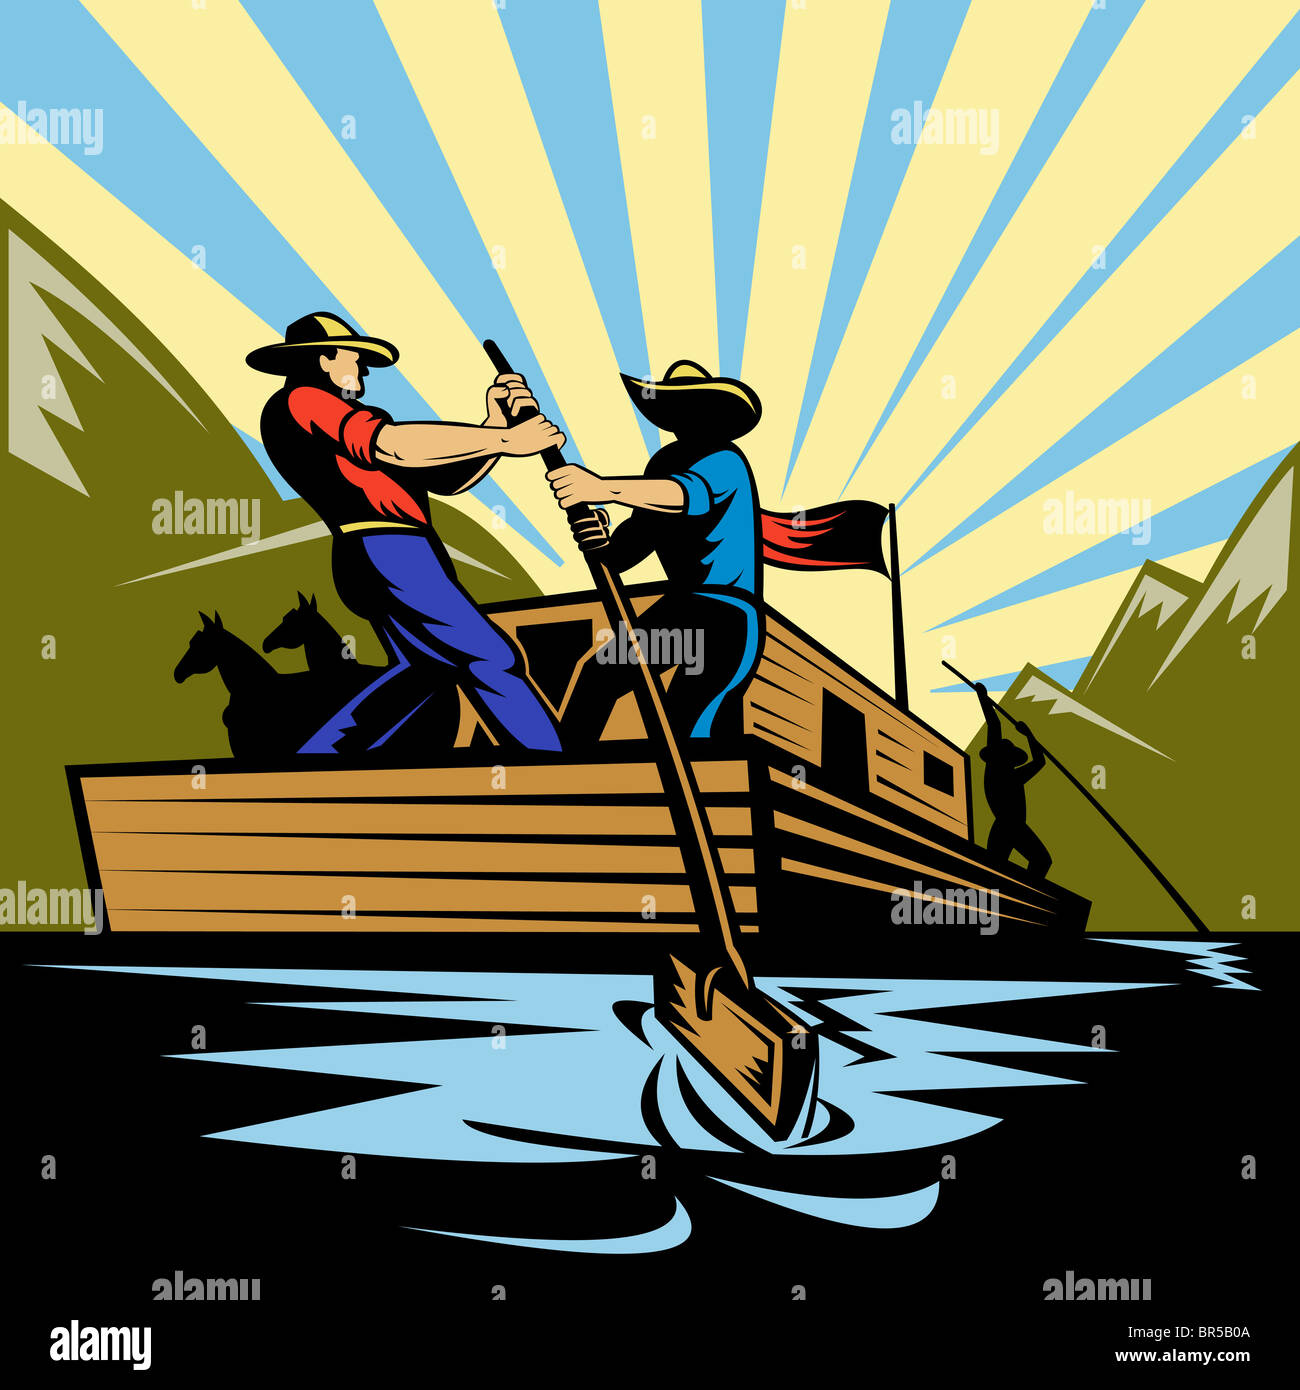 Illustration of a Cowboy man steering flatboat along river Stock Photo